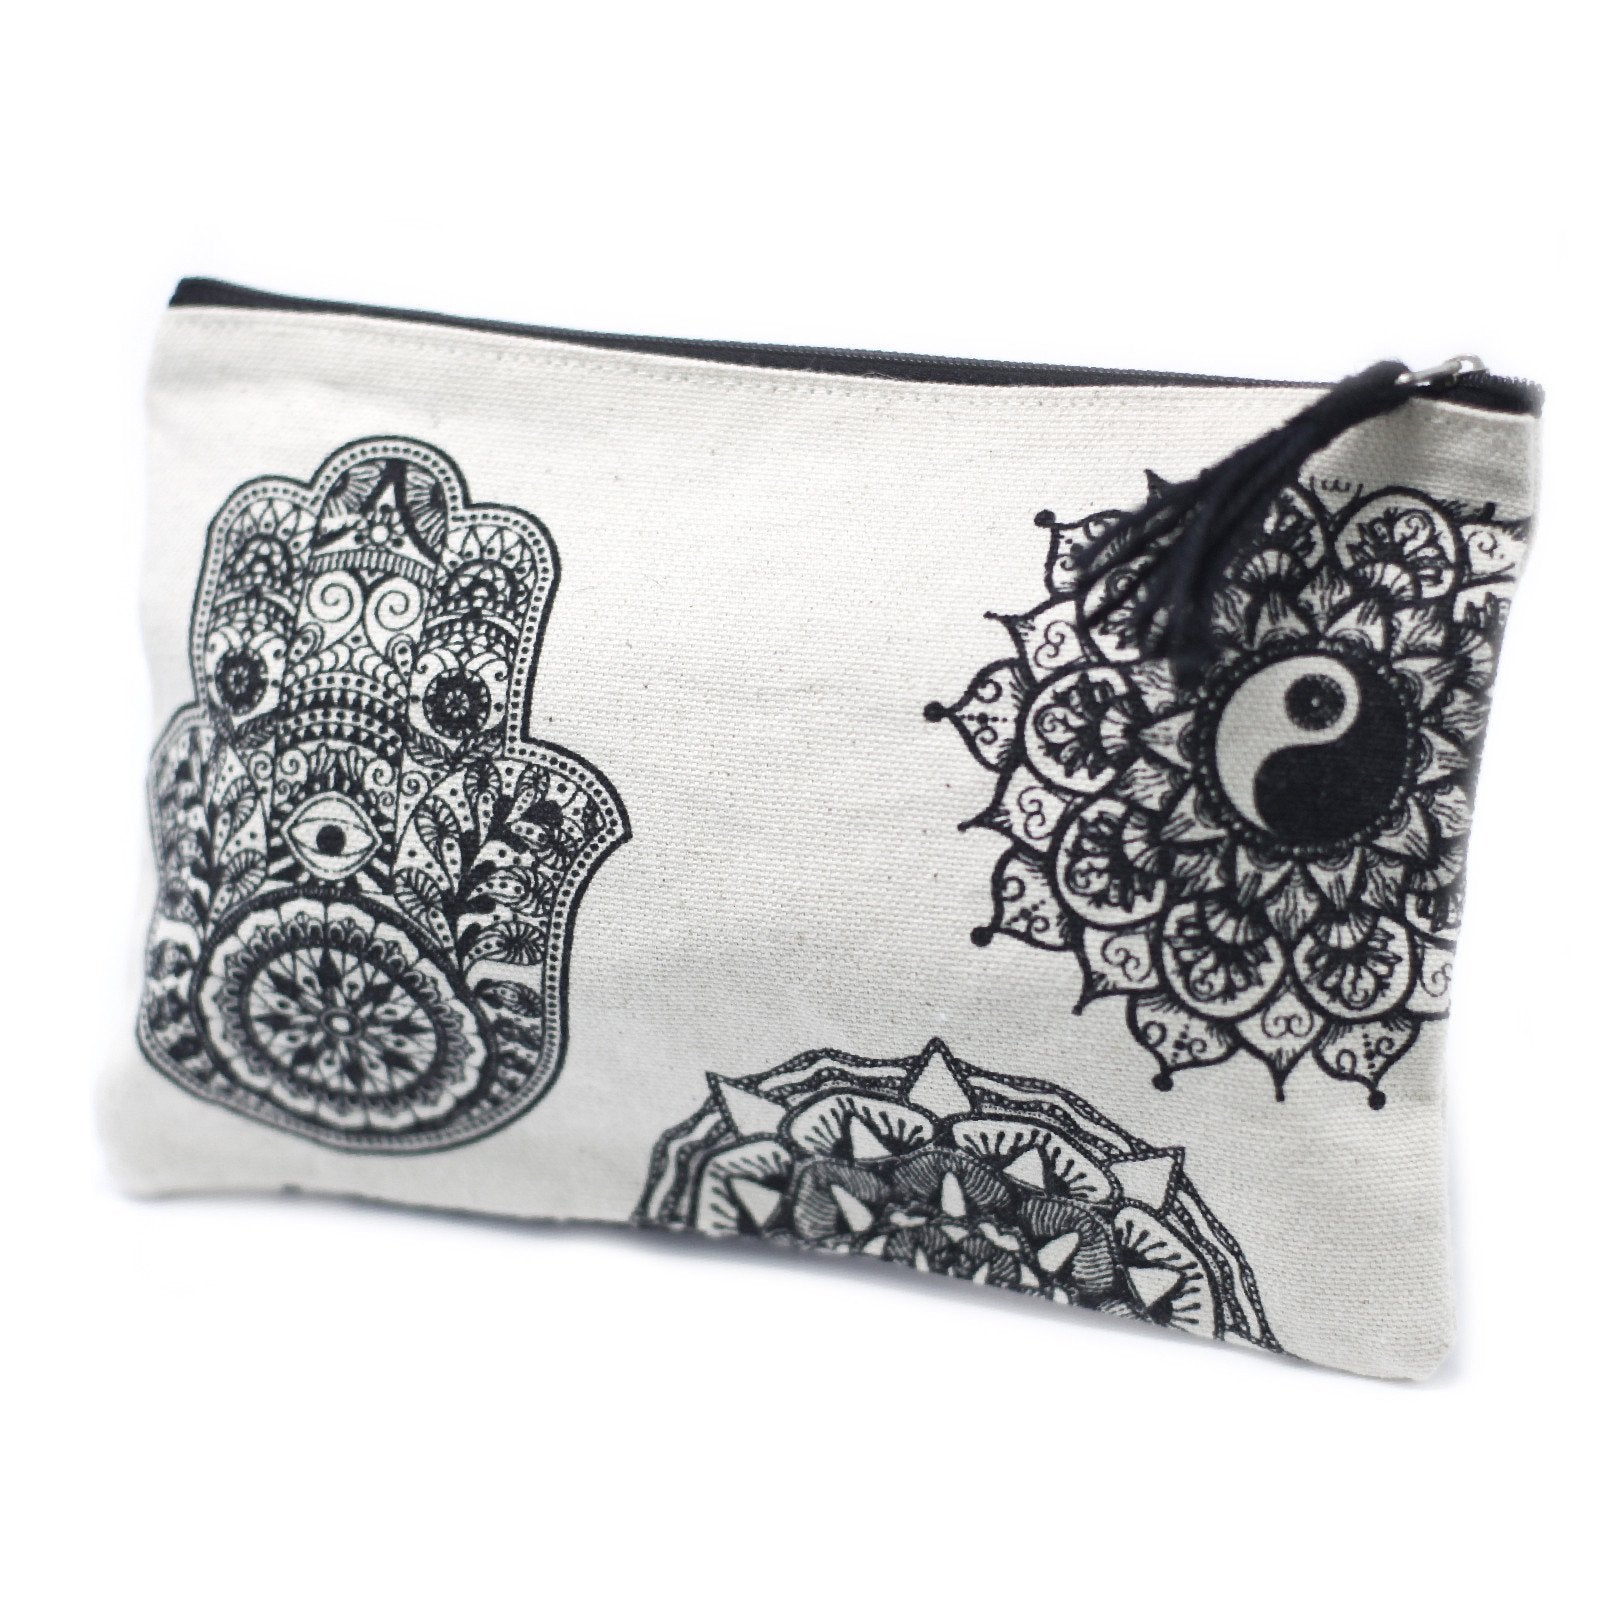 Mandala Classic Zip Pouch - Gift2U.co.uk - Unique gifts online to You